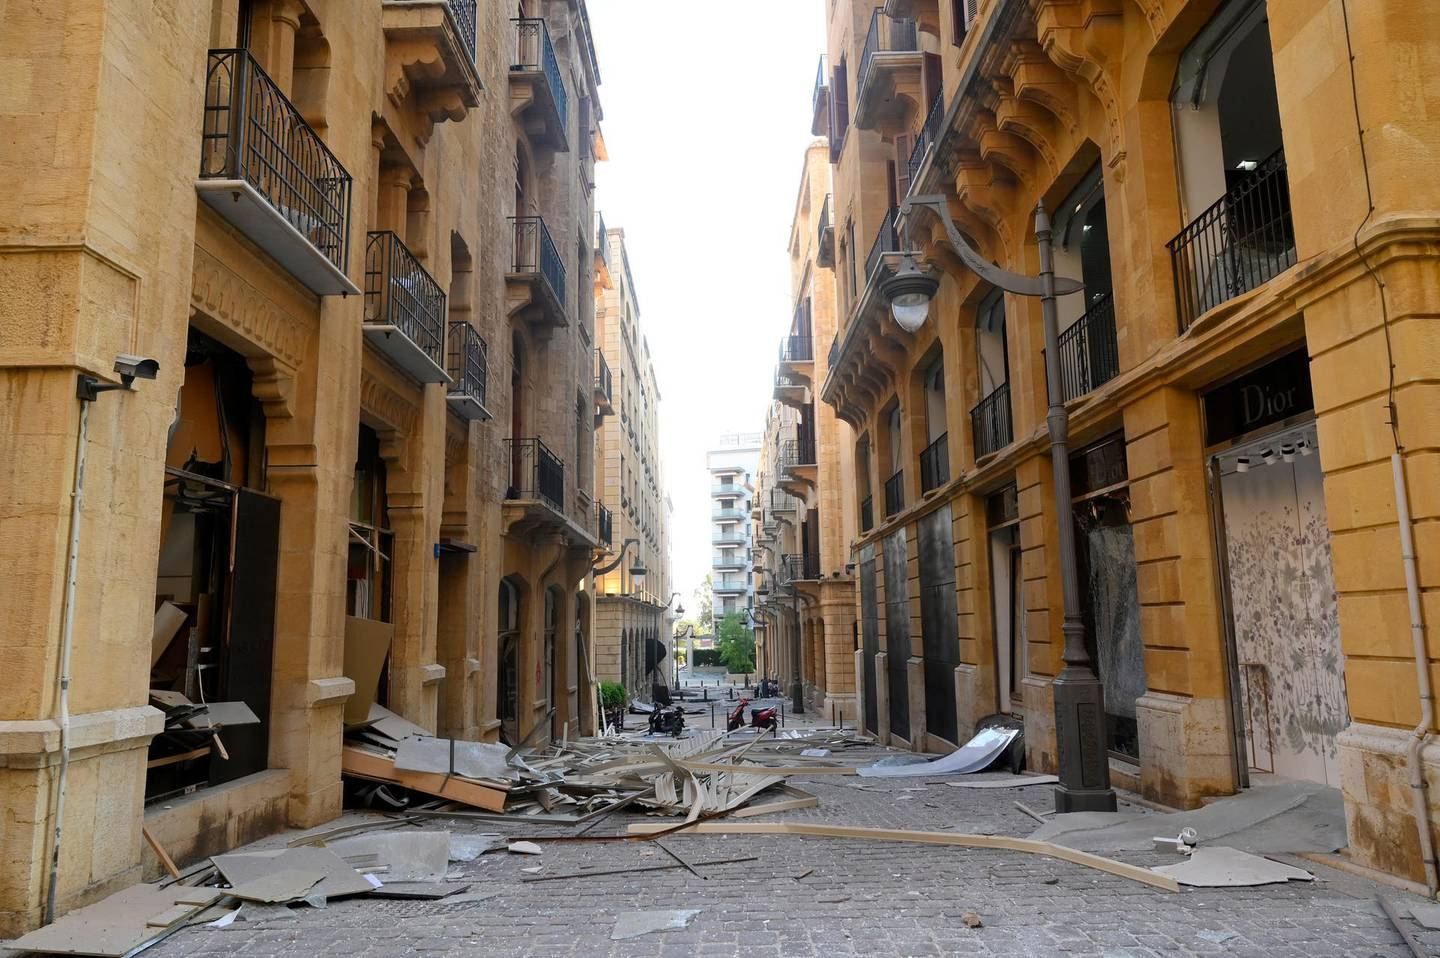 epa08584748 Damaged shops in the aftermath of a massive explosion in downtown Beirut, Lebanon, 05 August 2020. According to media reports, at least 100 people were killed and more than 4,000 were injured after an explosion, caused by over 2,500 tonnes of ammonium nitrate stored in a warehouse, devastated the port area on 04 August.  EPA/WAEL HAMZEH